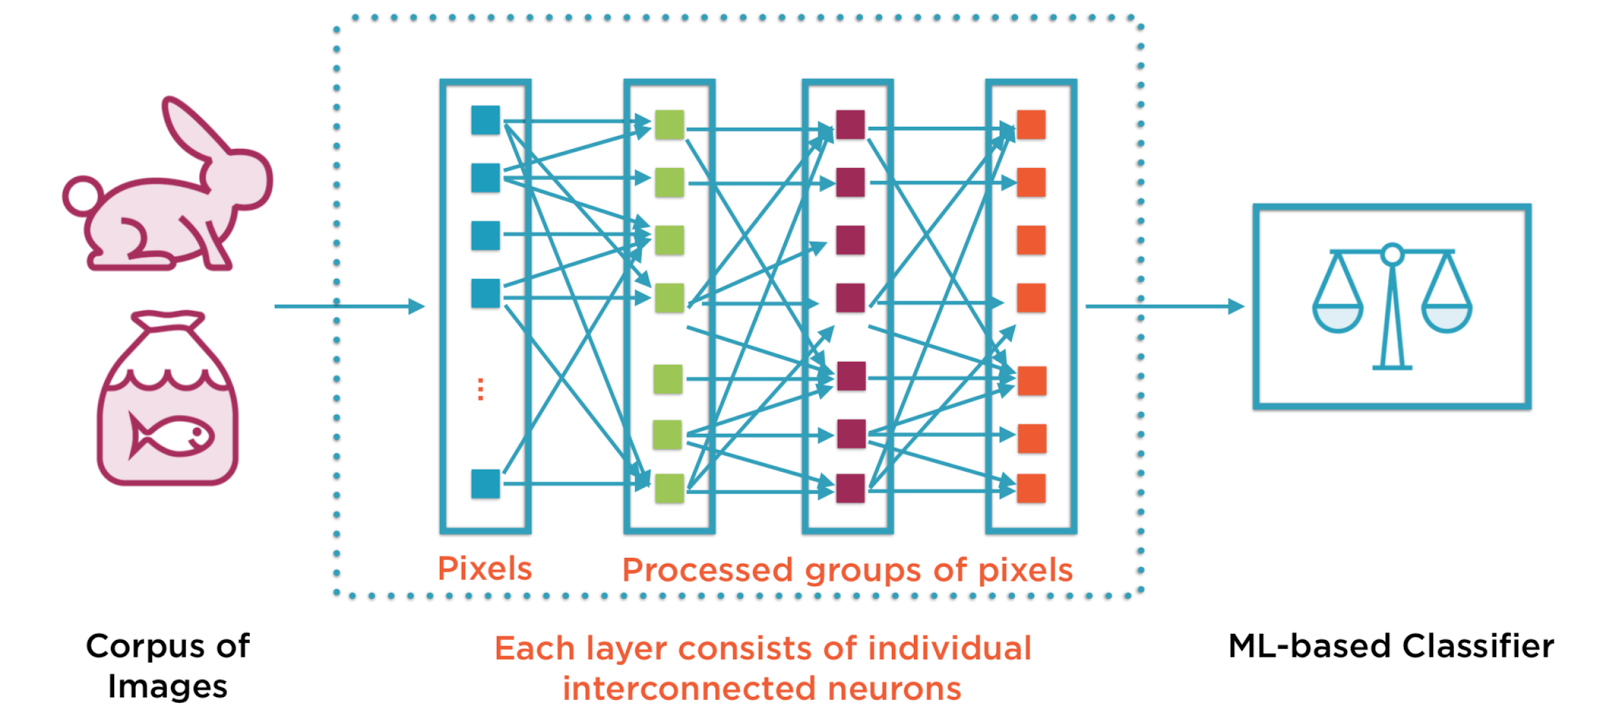 TensorFlow and TensorBoard : Deep Learning terminology and tools